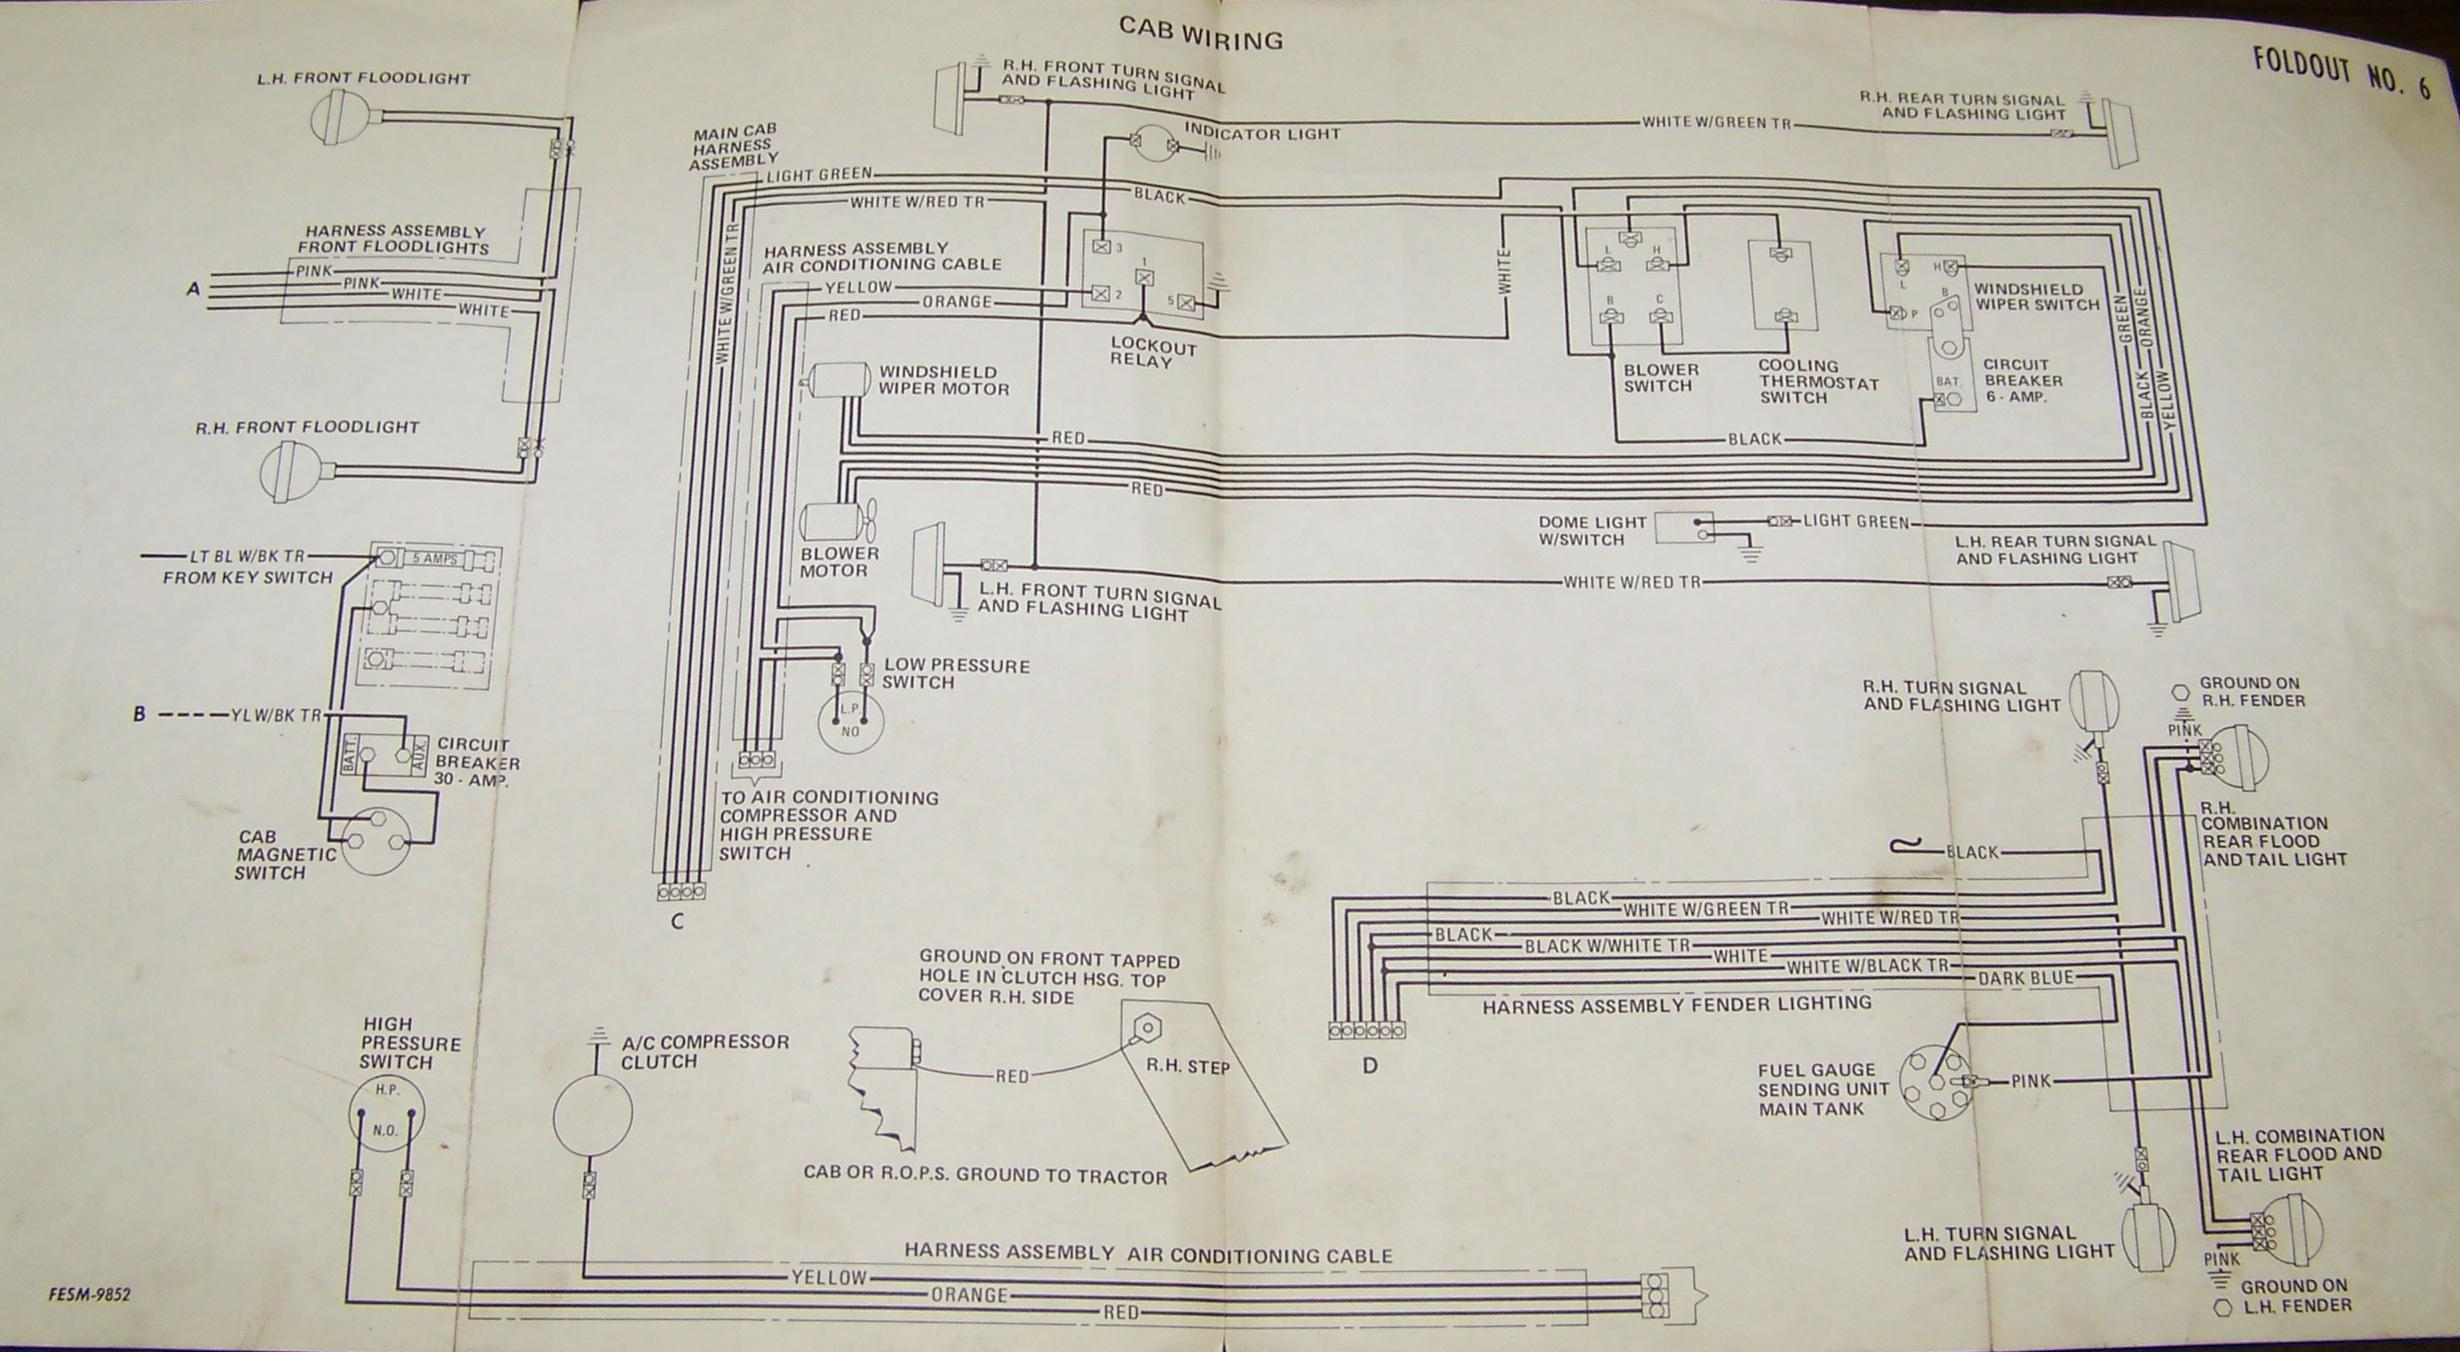 86series6 carter & gruenewald co inc ih farmall tractor electrical international cub tractor wiring diagram at soozxer.org